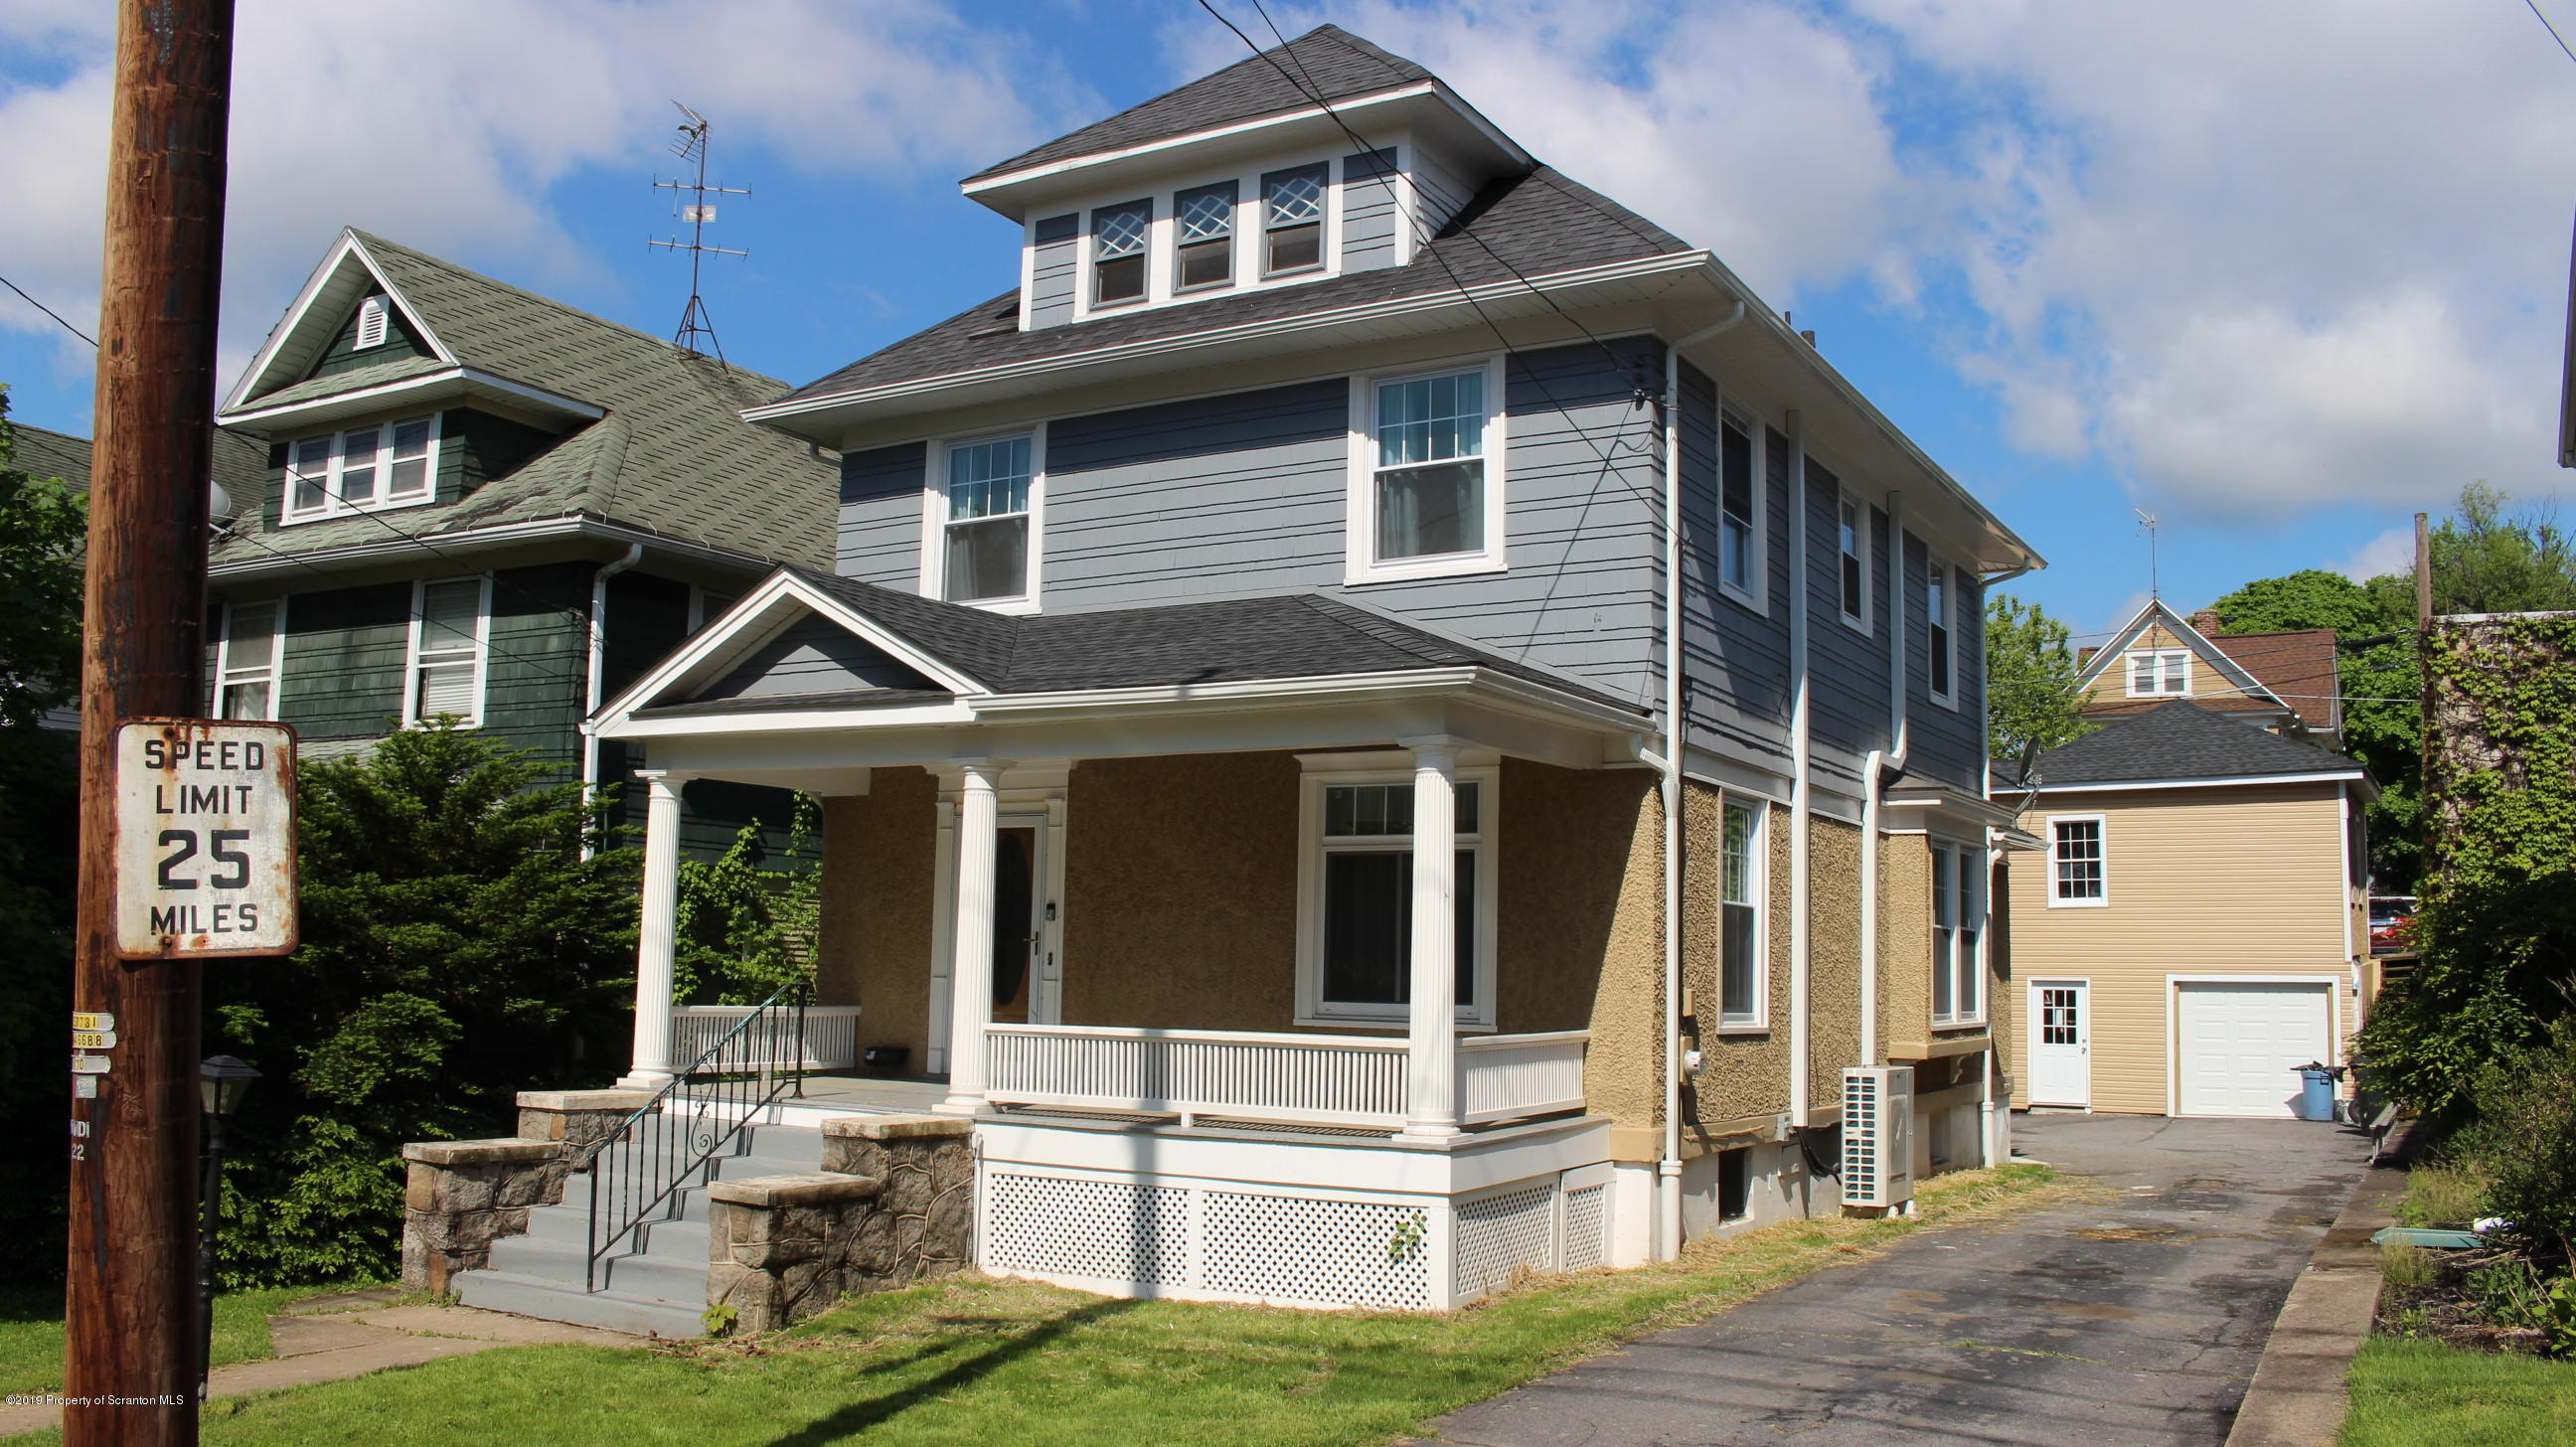 1729 Wyoming Ave, Scranton, Pennsylvania 18509, 4 Bedrooms Bedrooms, 7 Rooms Rooms,4 BathroomsBathrooms,Single Family,For Sale,Wyoming,19-1155